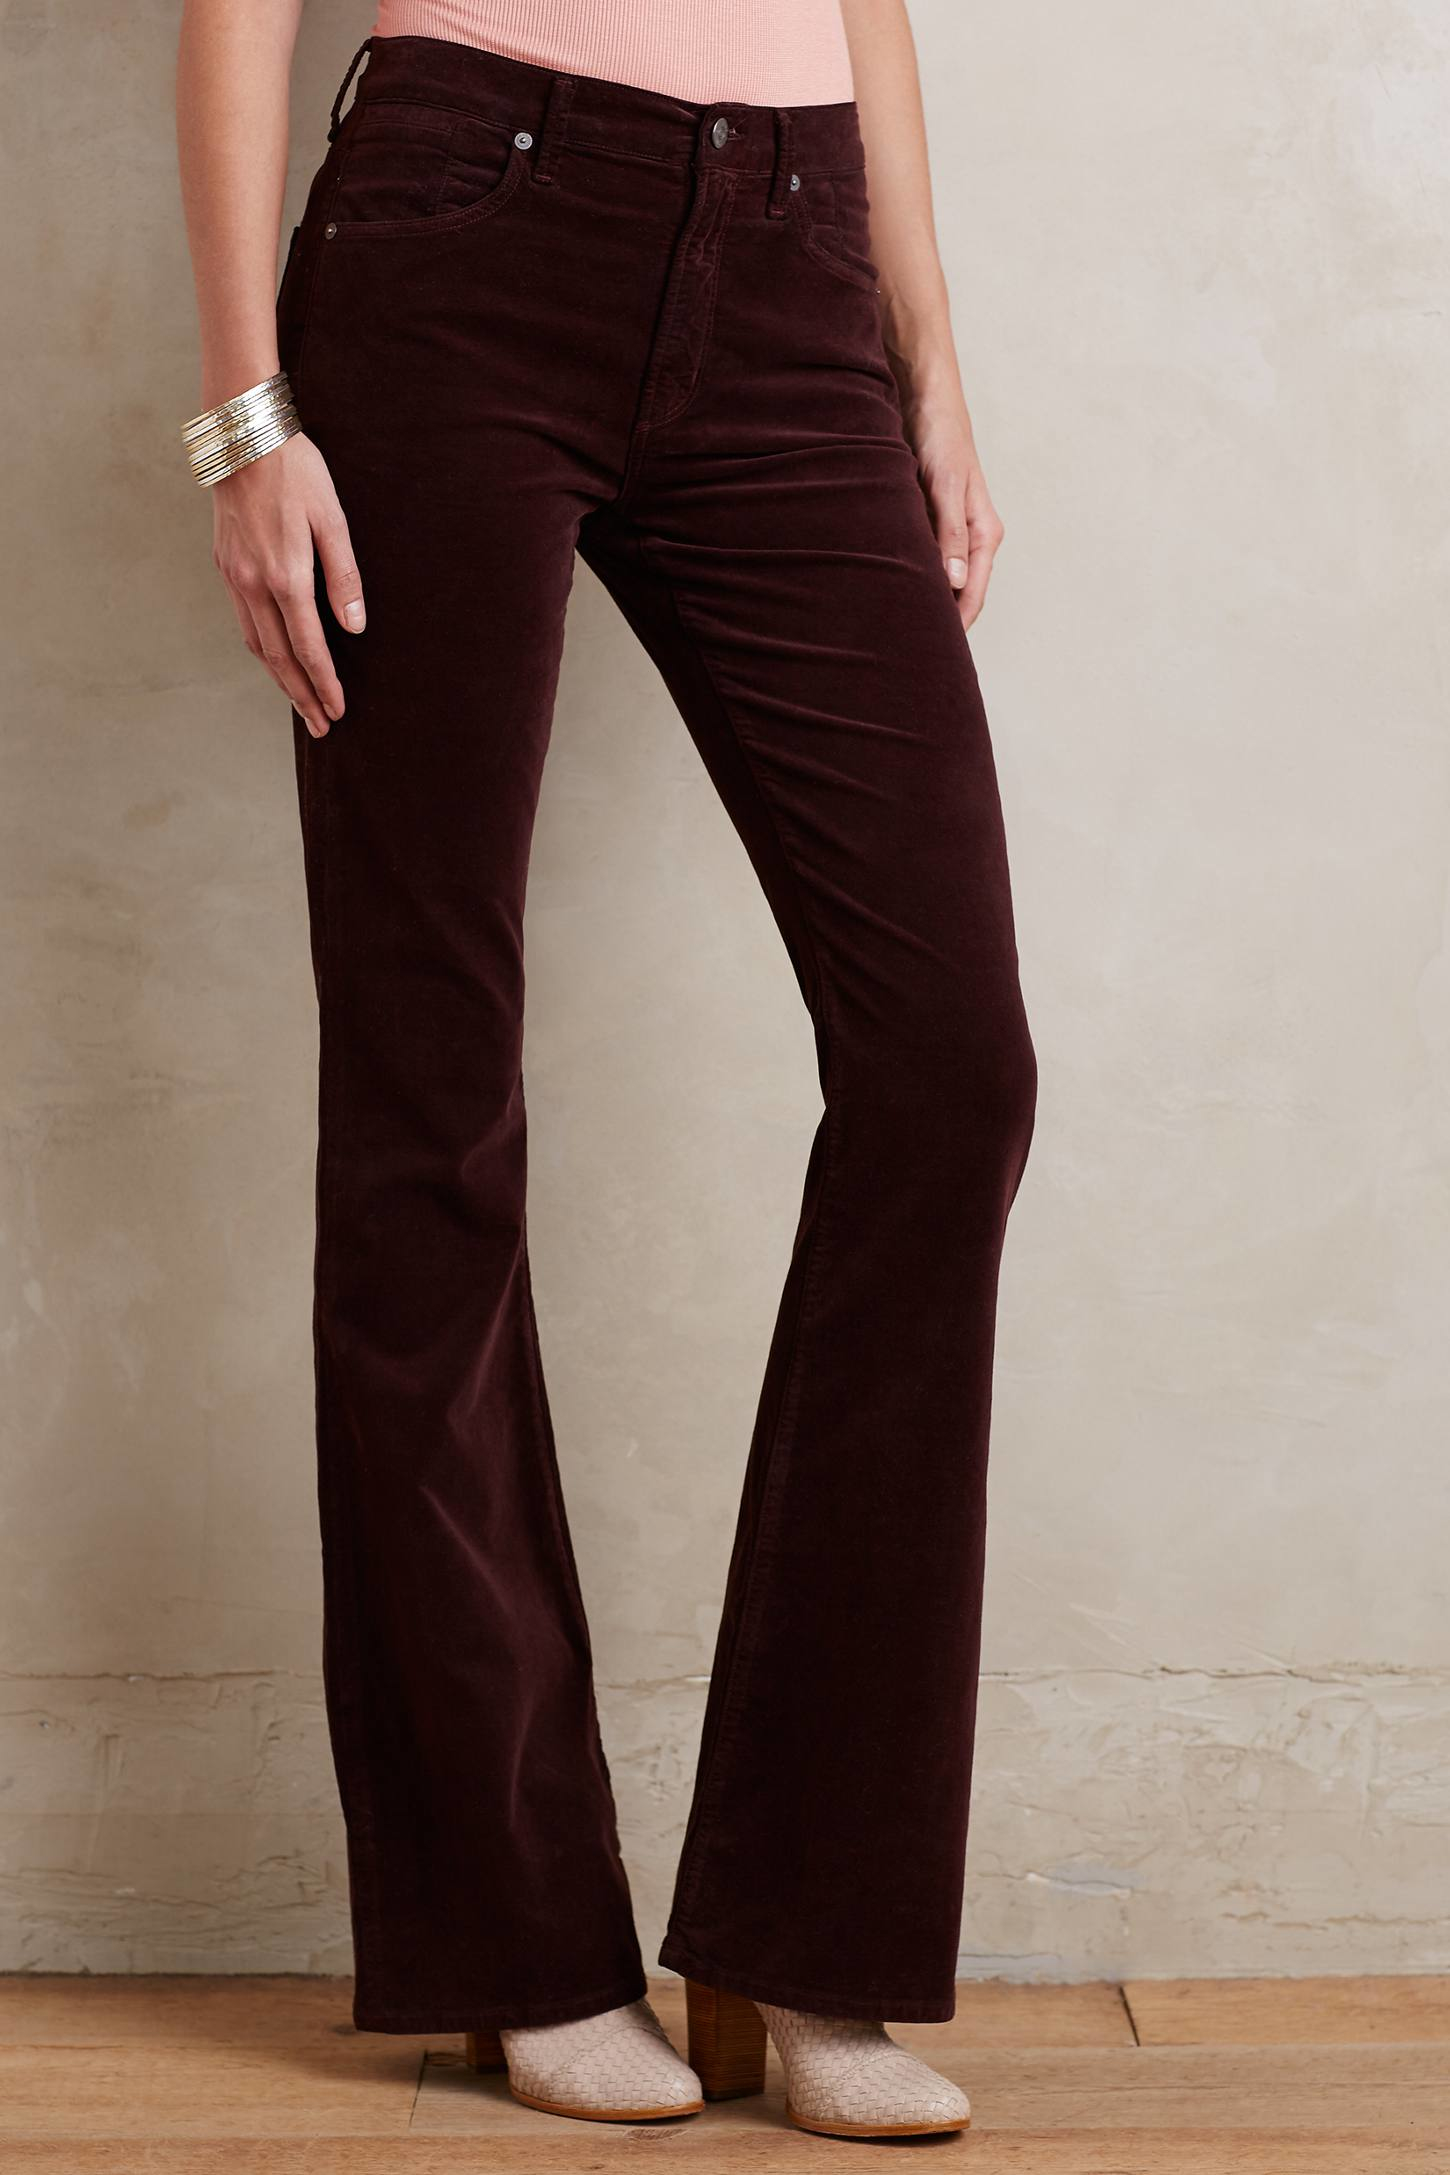 Citizens of humanity Fleetwood Velvet Flare Jeans in Red | Lyst